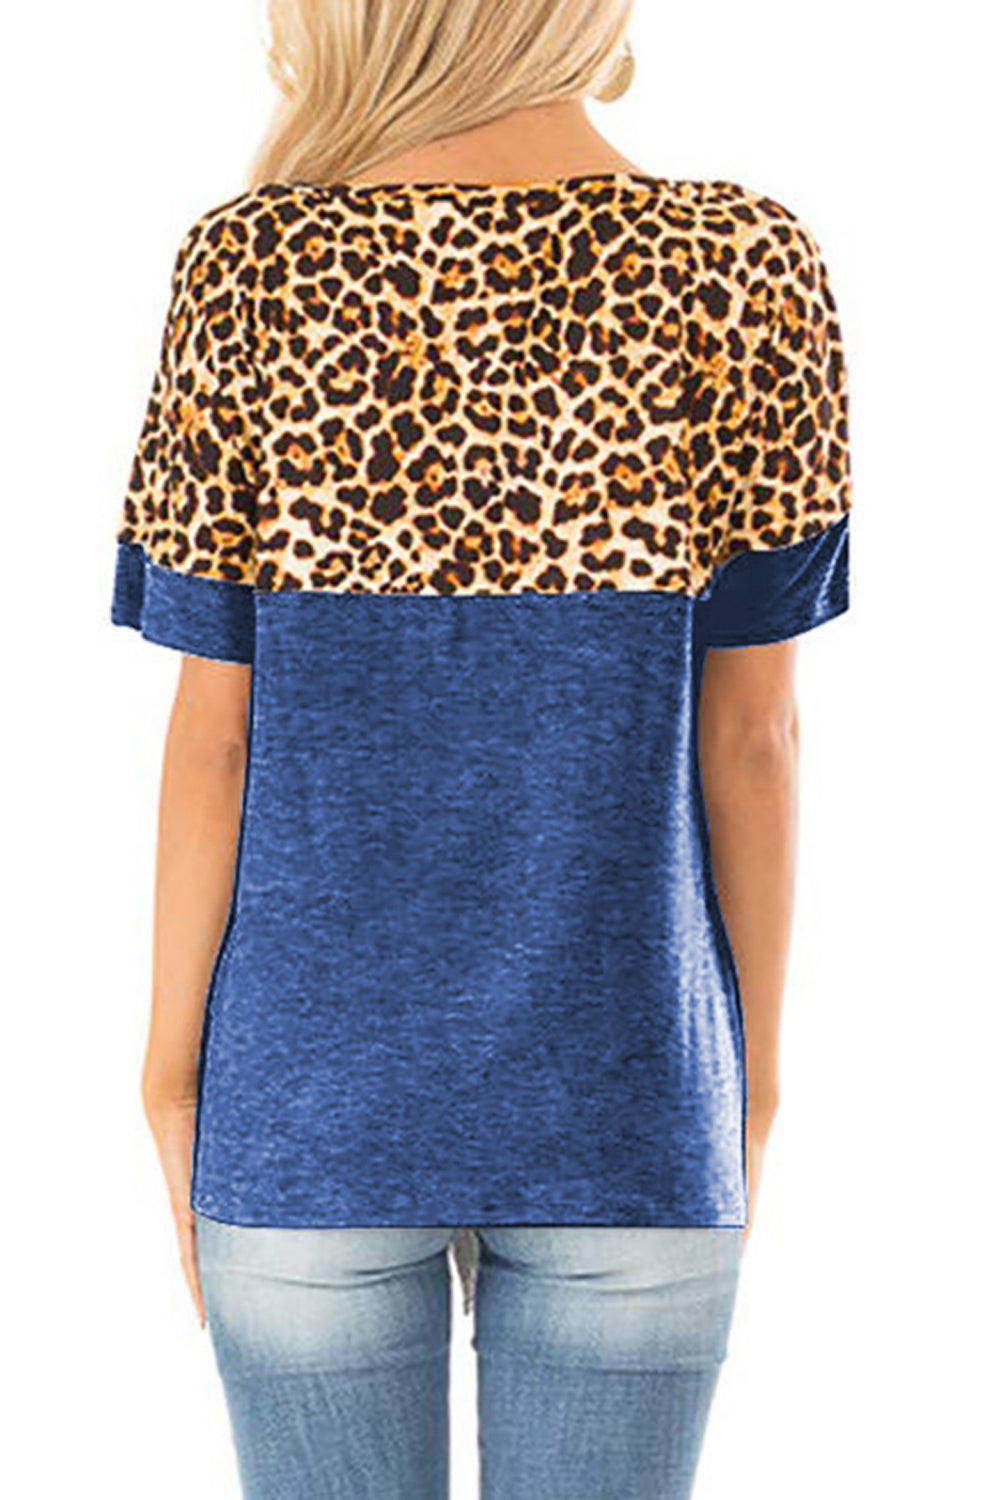 Blue Leopard Patchwork Knot Shirt Tops & Tees Discount Designer Fashion Clothes Shoes Bags Women Men Kids Children Black Owned Business